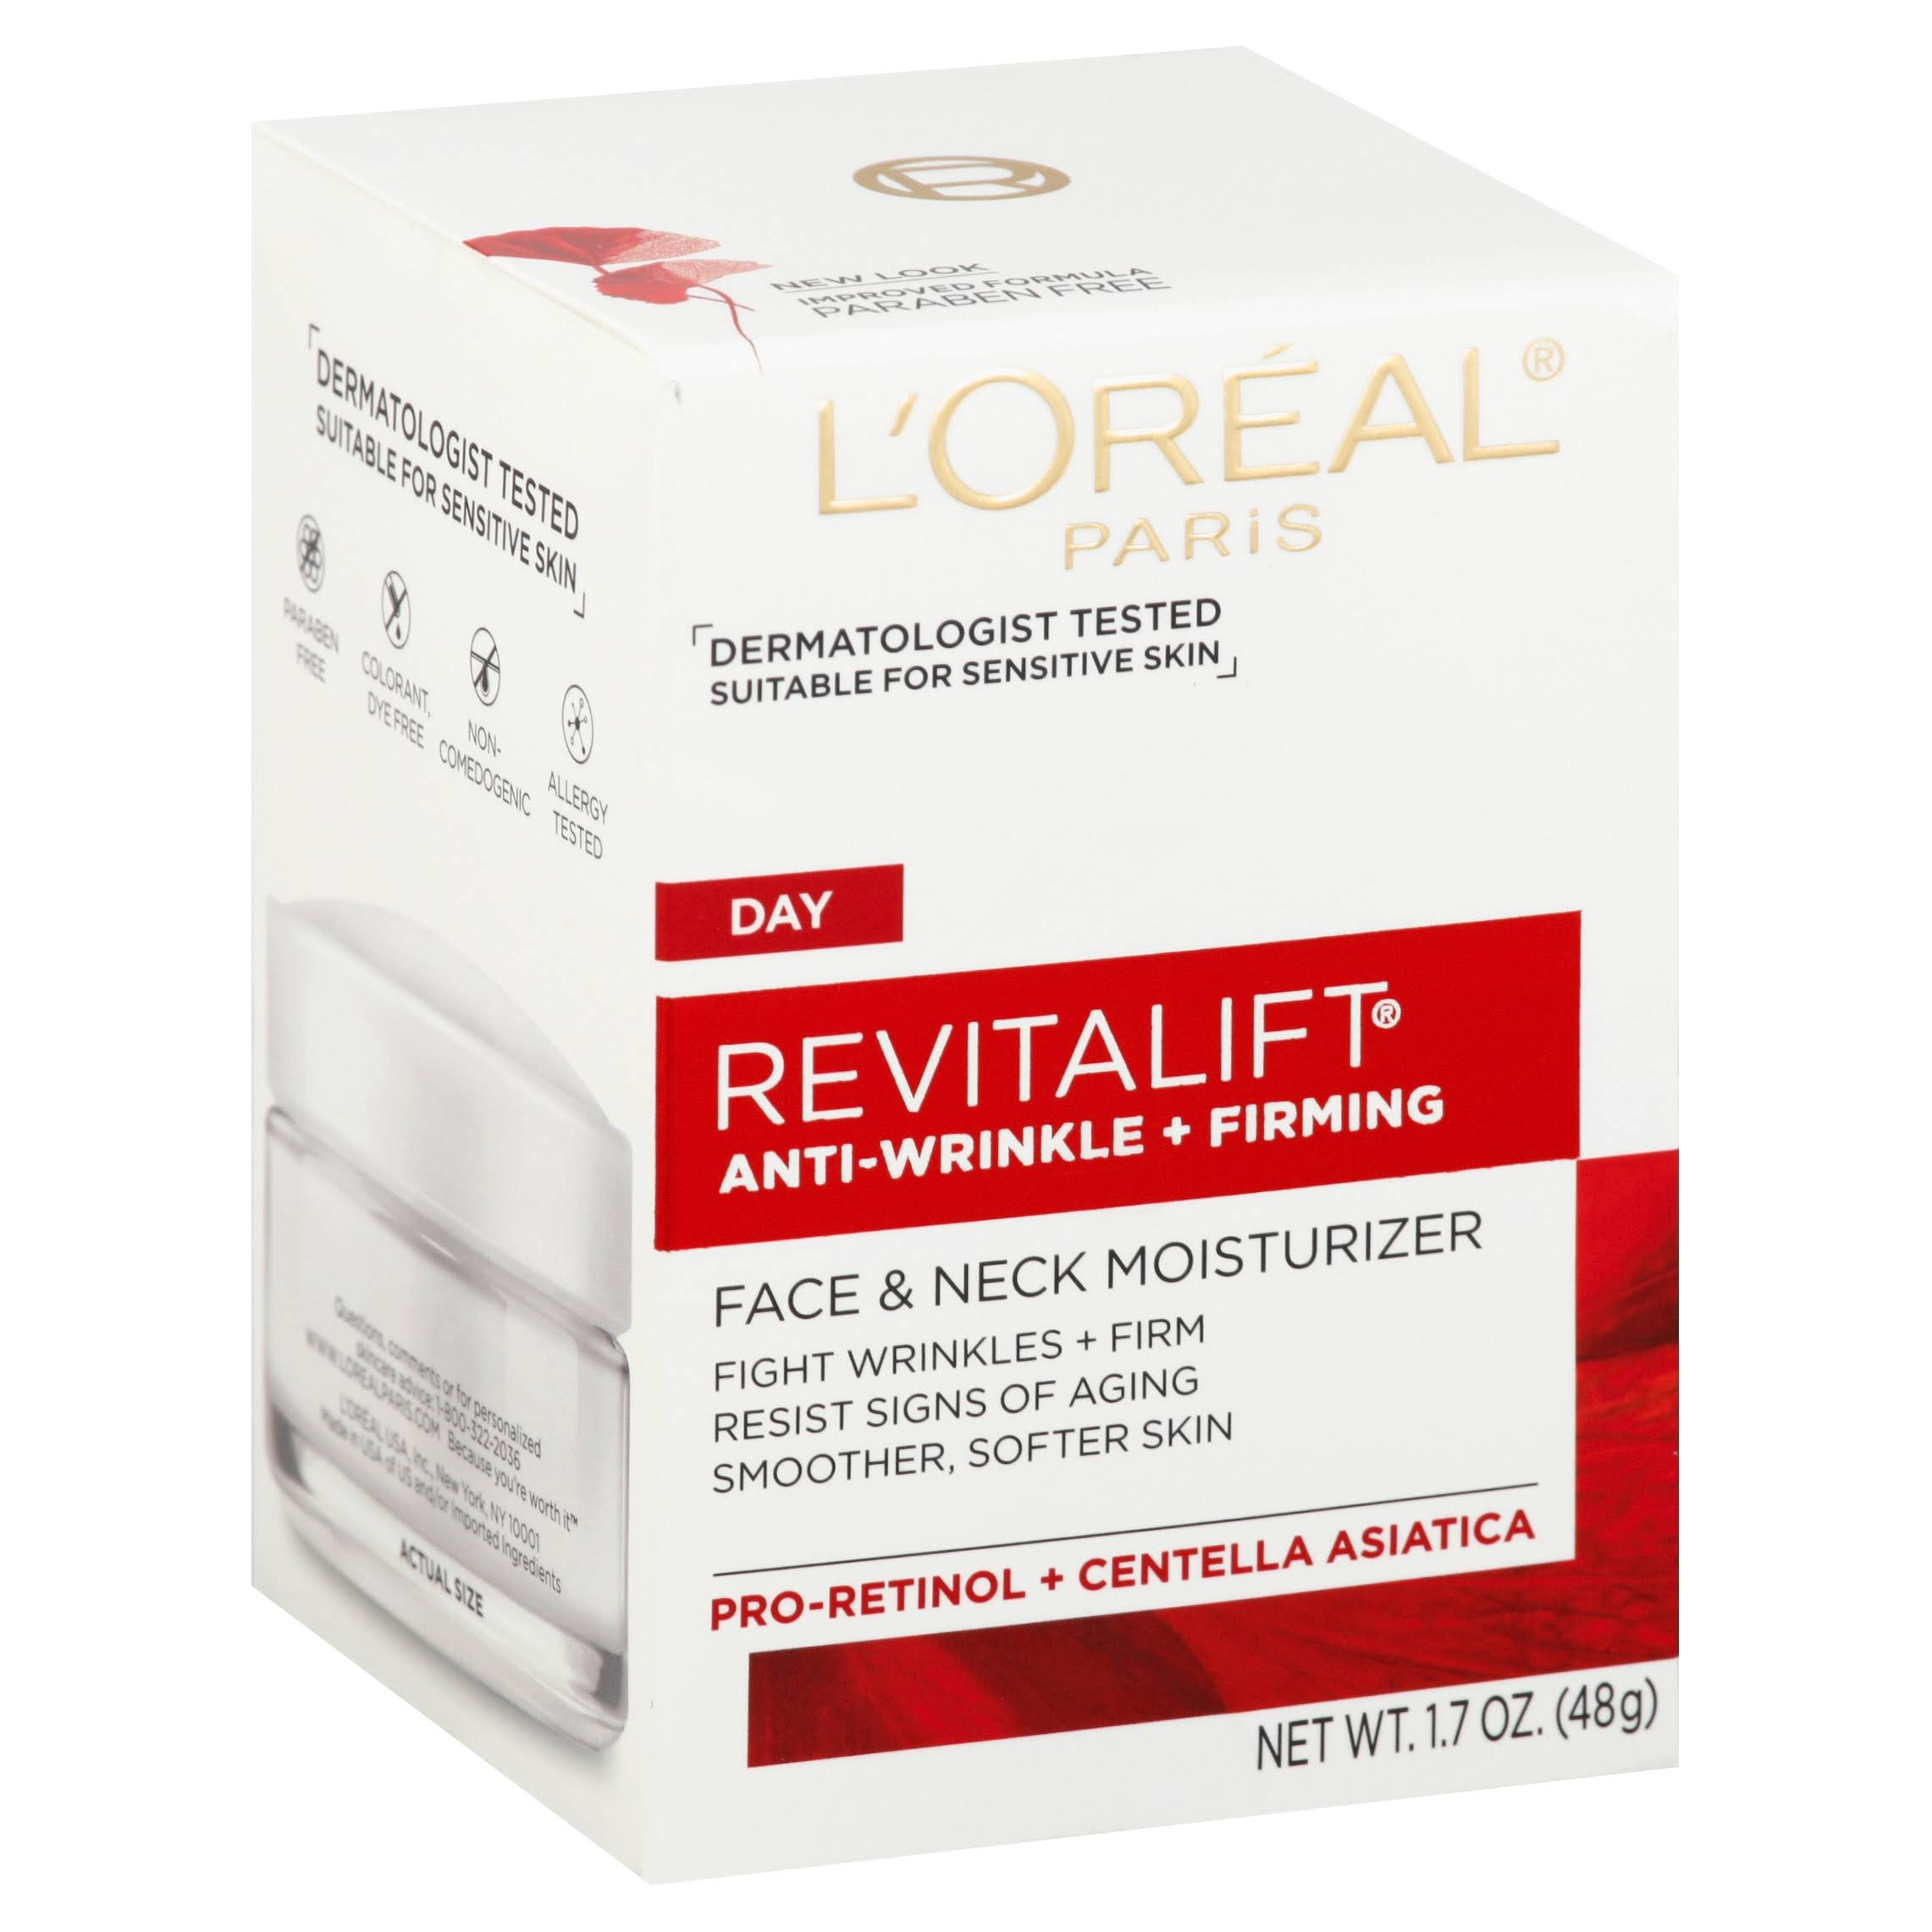 L'Oreal Paris Revitalift Anti Wrinkle and Firming Face and Neck Contour Cream - 1.7oz